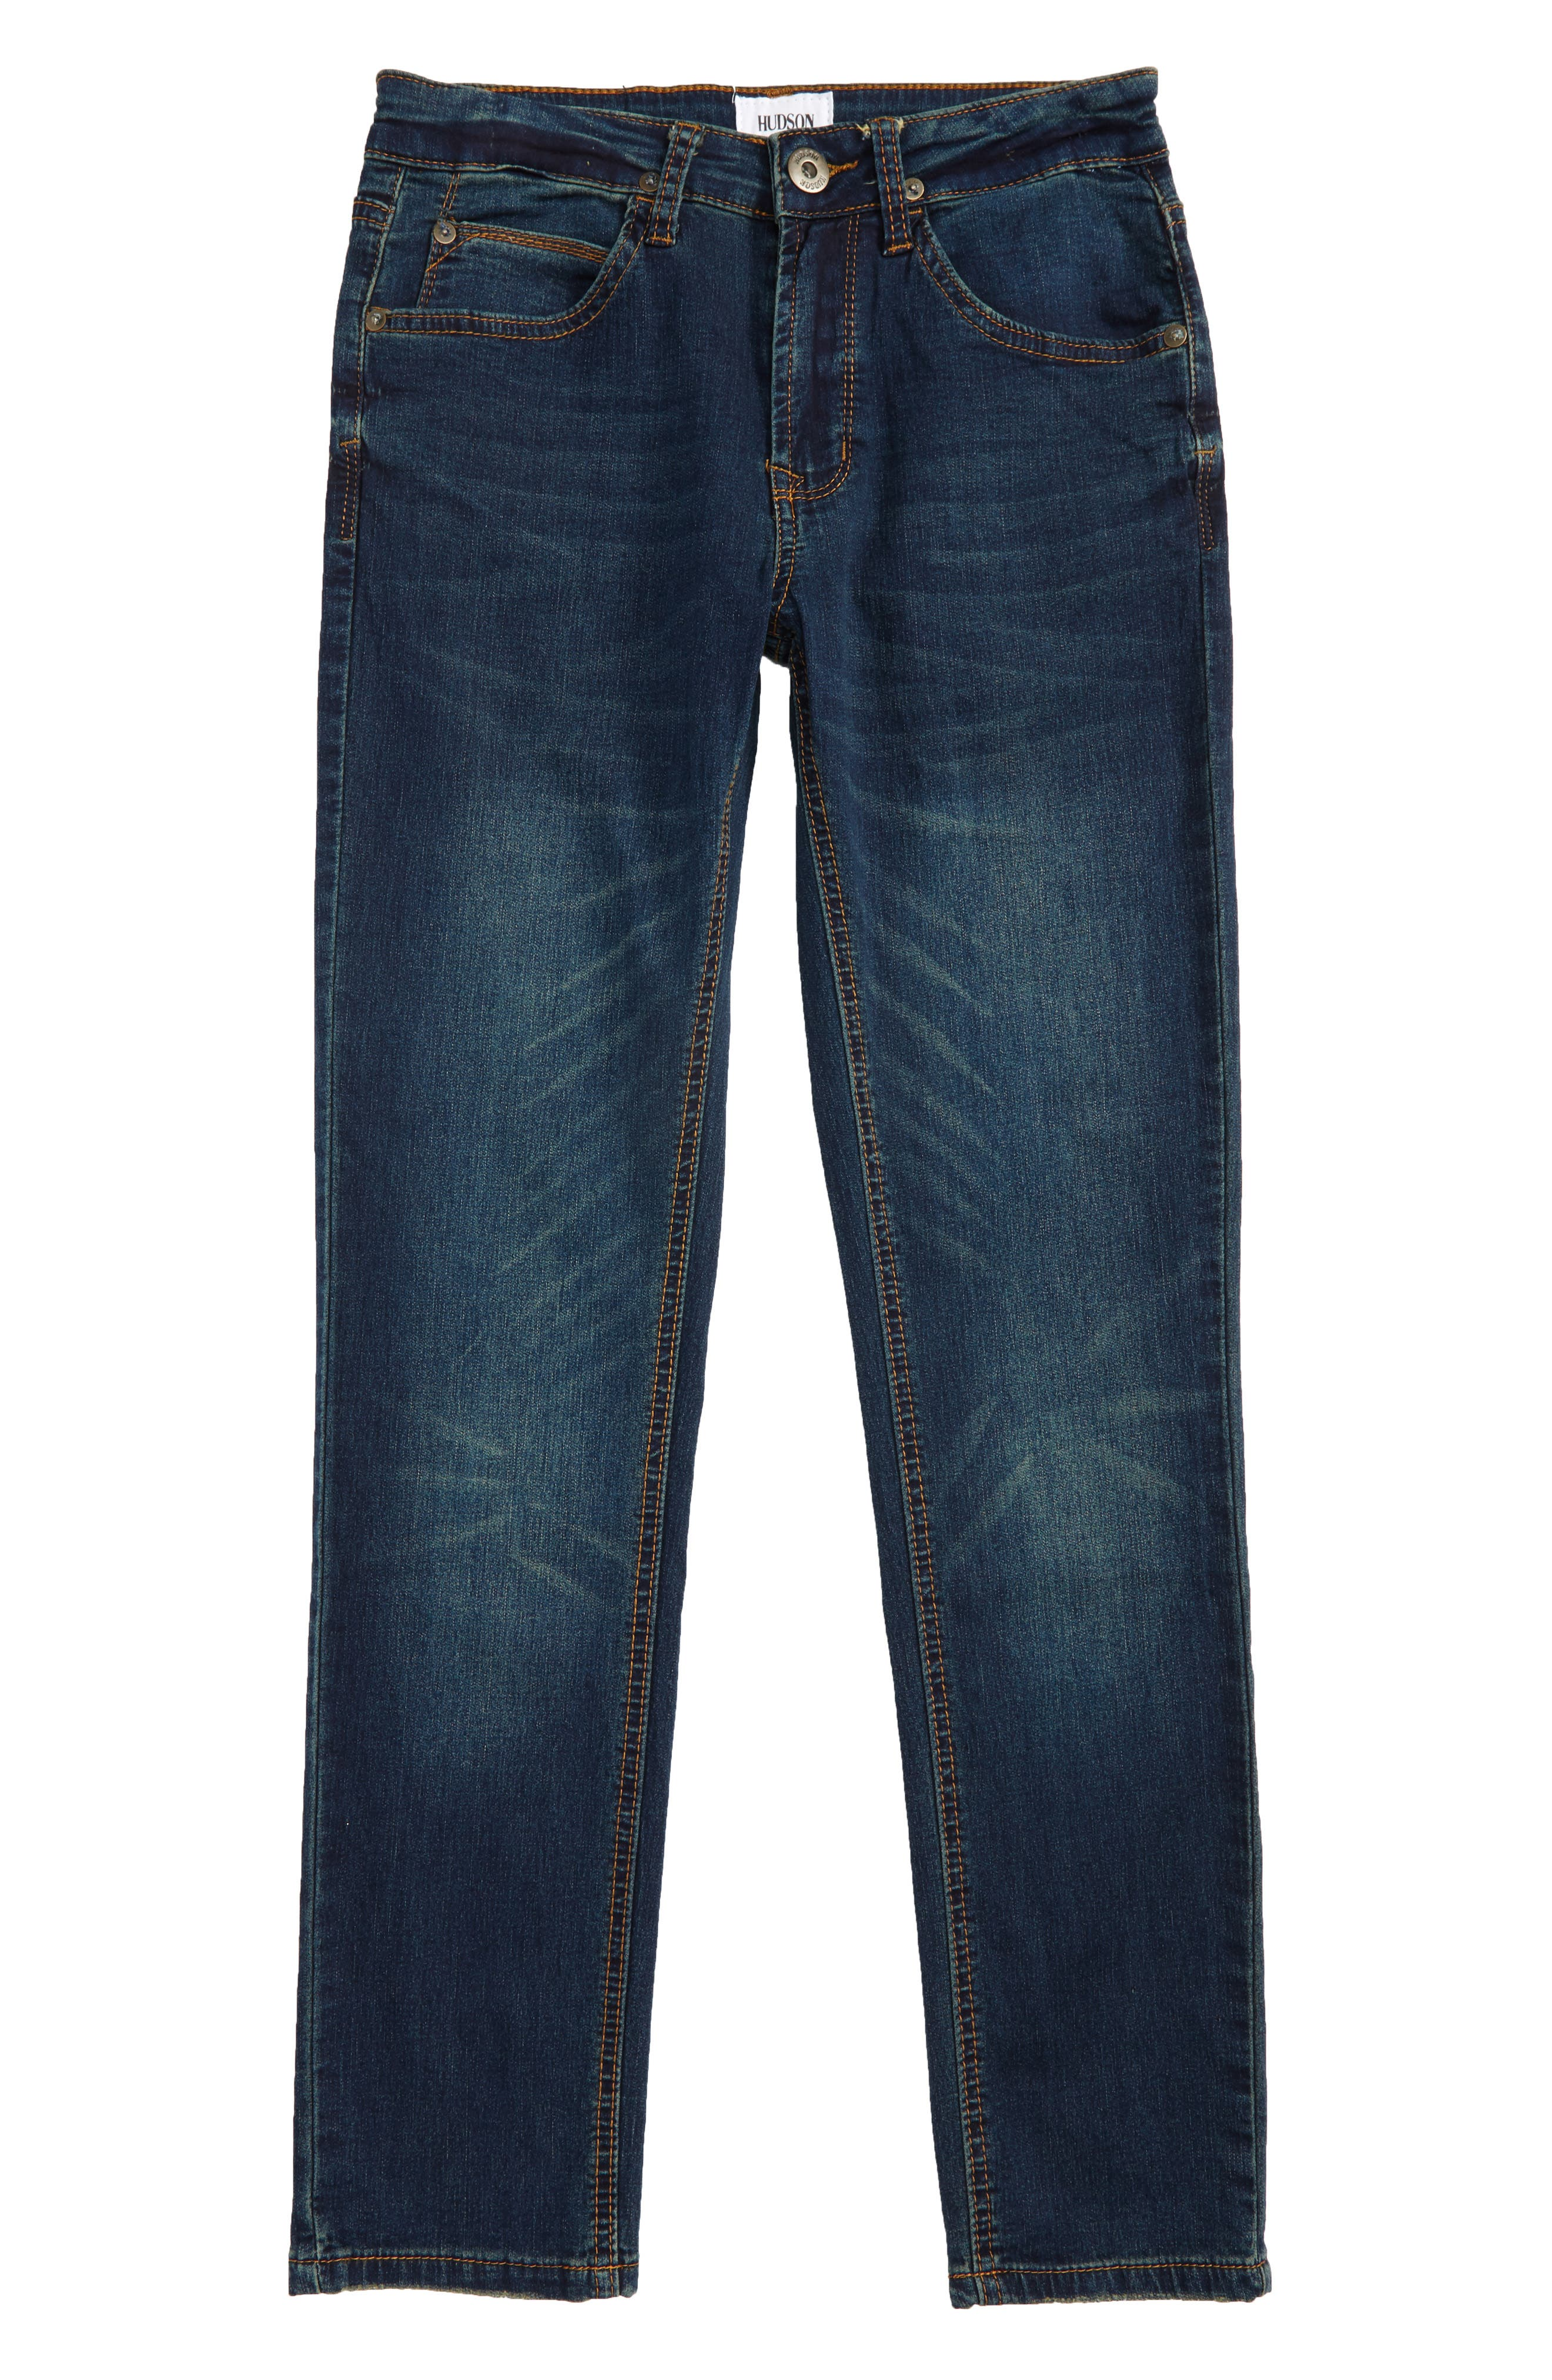 French Terry Pants,                         Main,                         color, 492